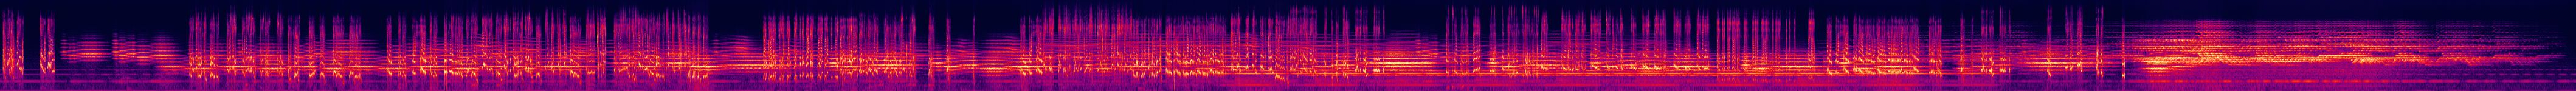 Amor Dei - 4. There IS a God! - Spectrogram.jpg